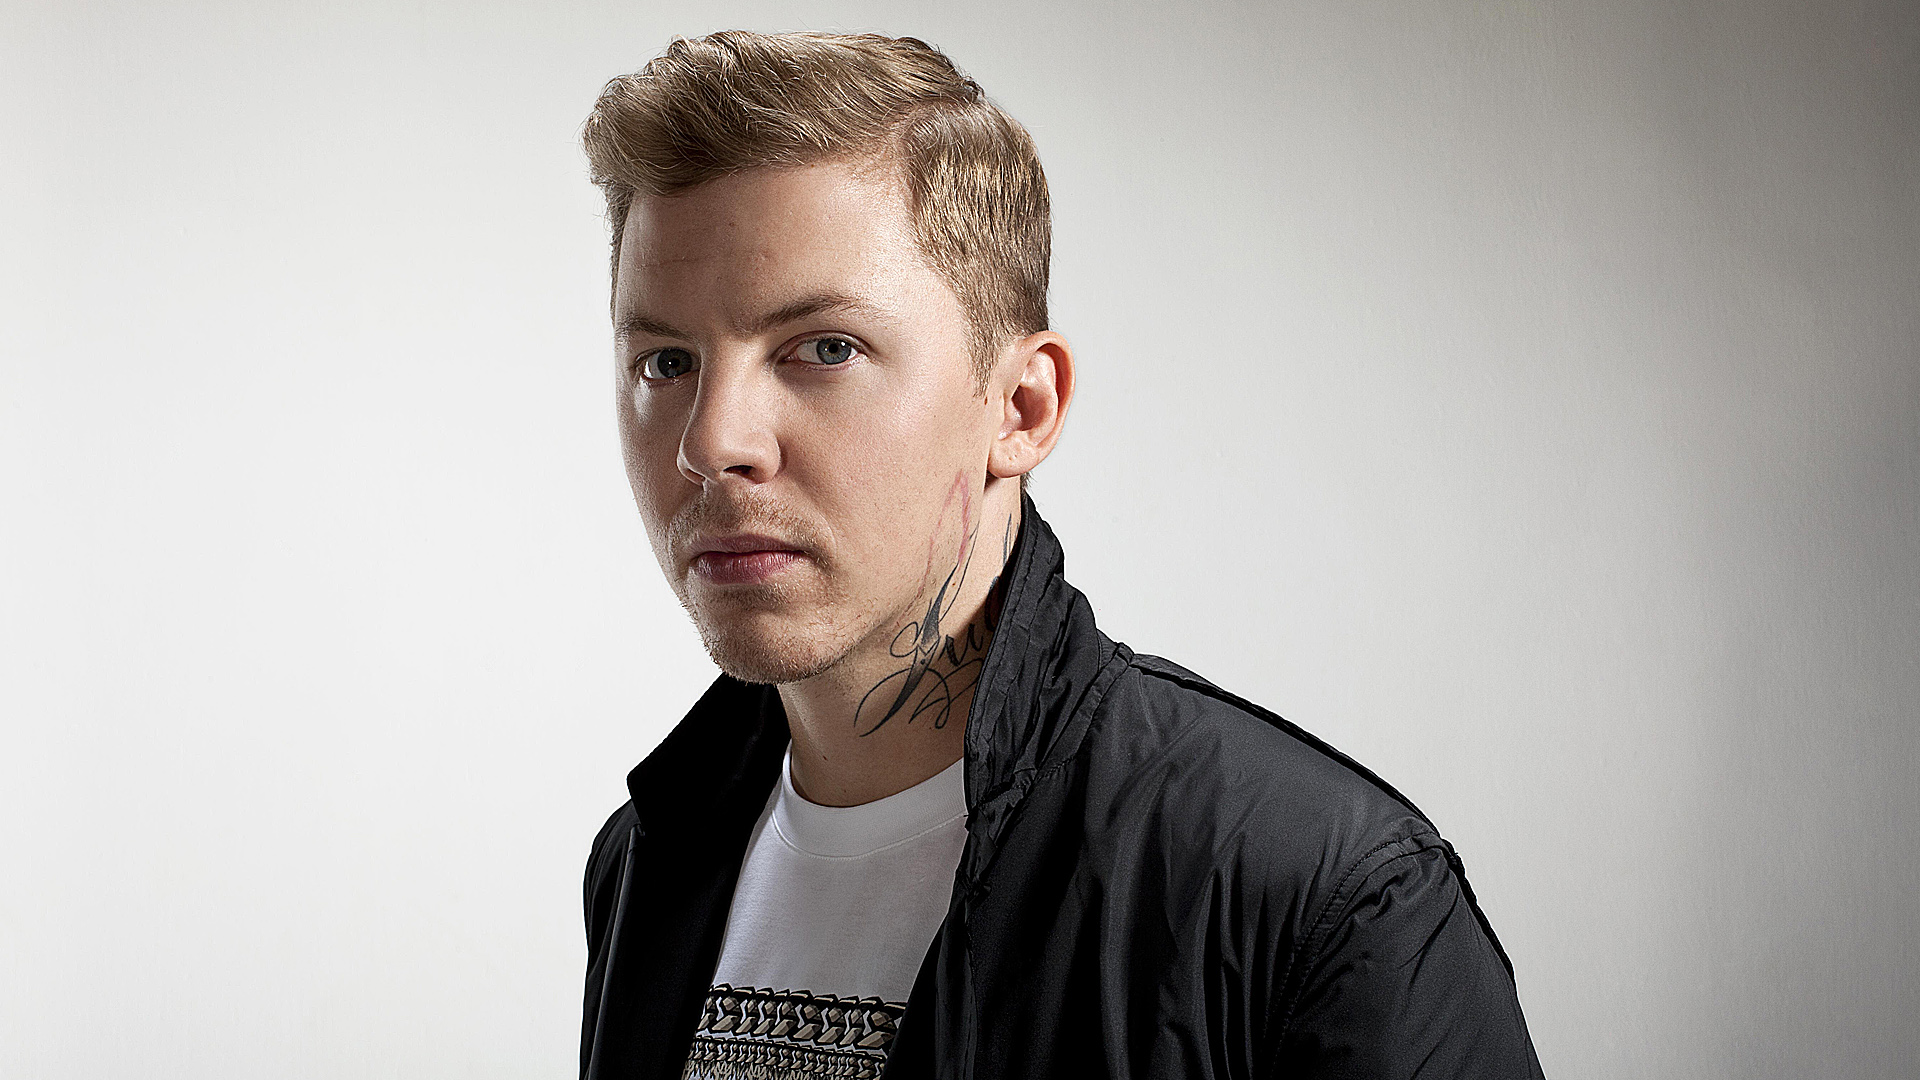 Professor Green Wallpaper